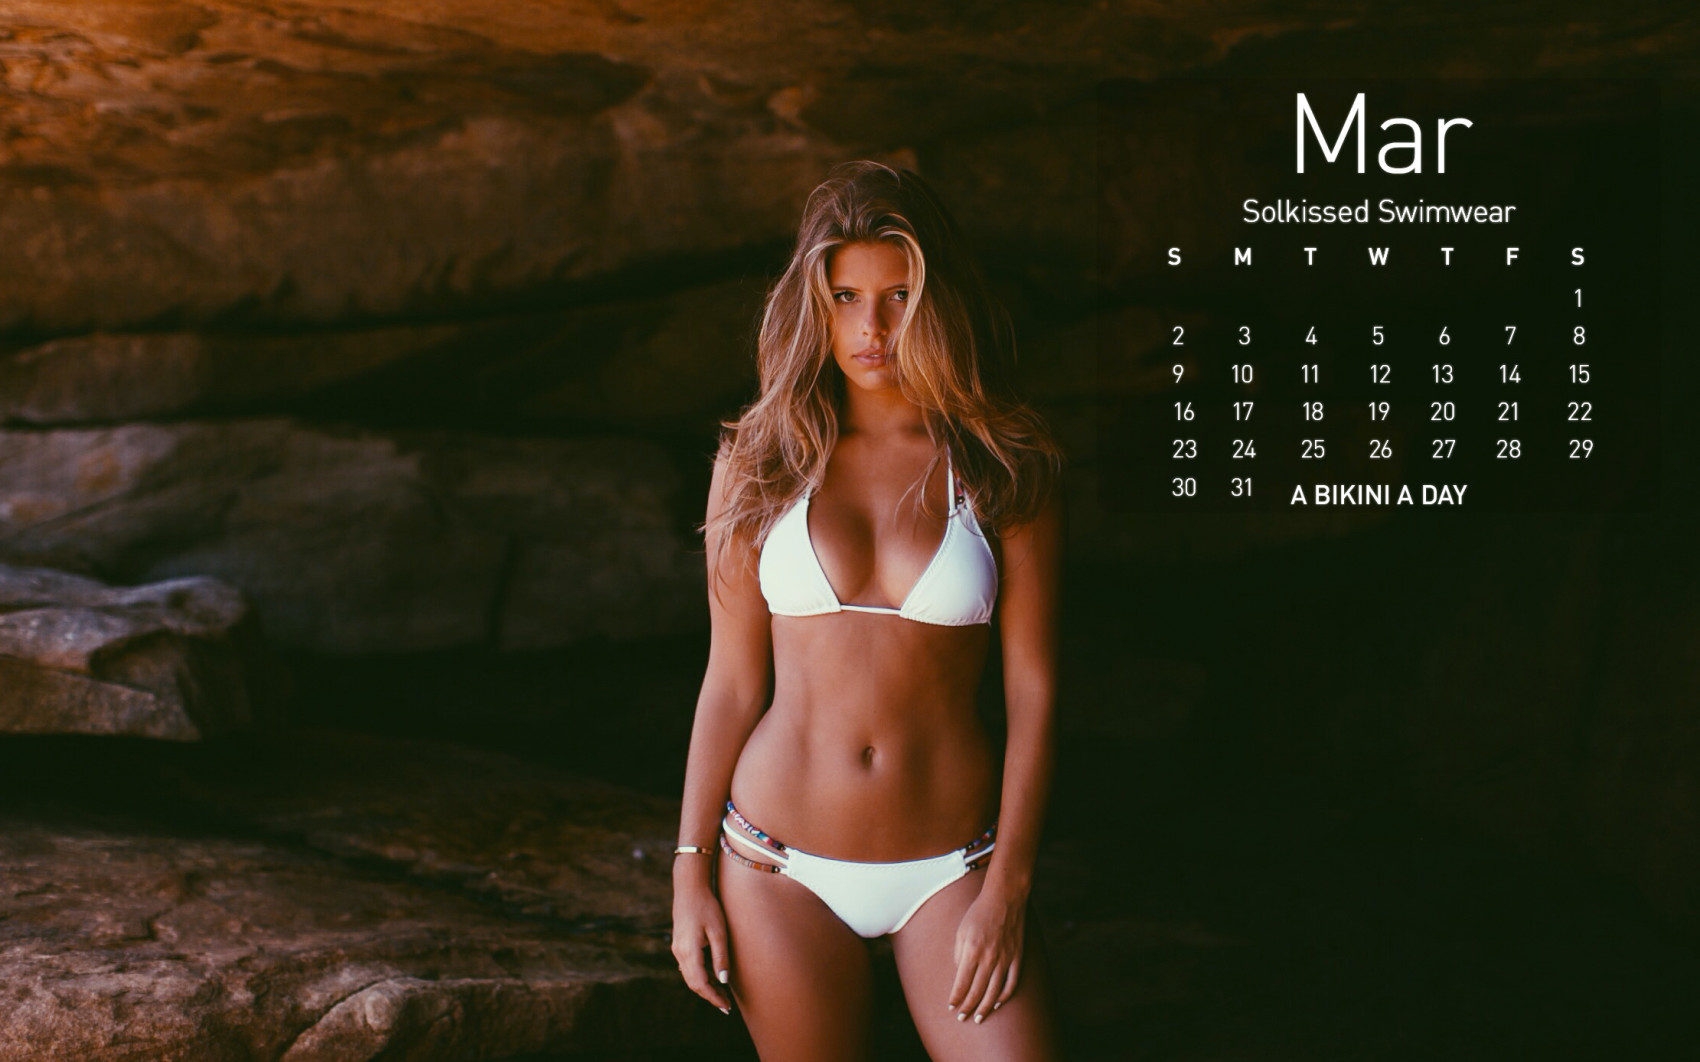 DOWNLOAD 2014 CALENDAR